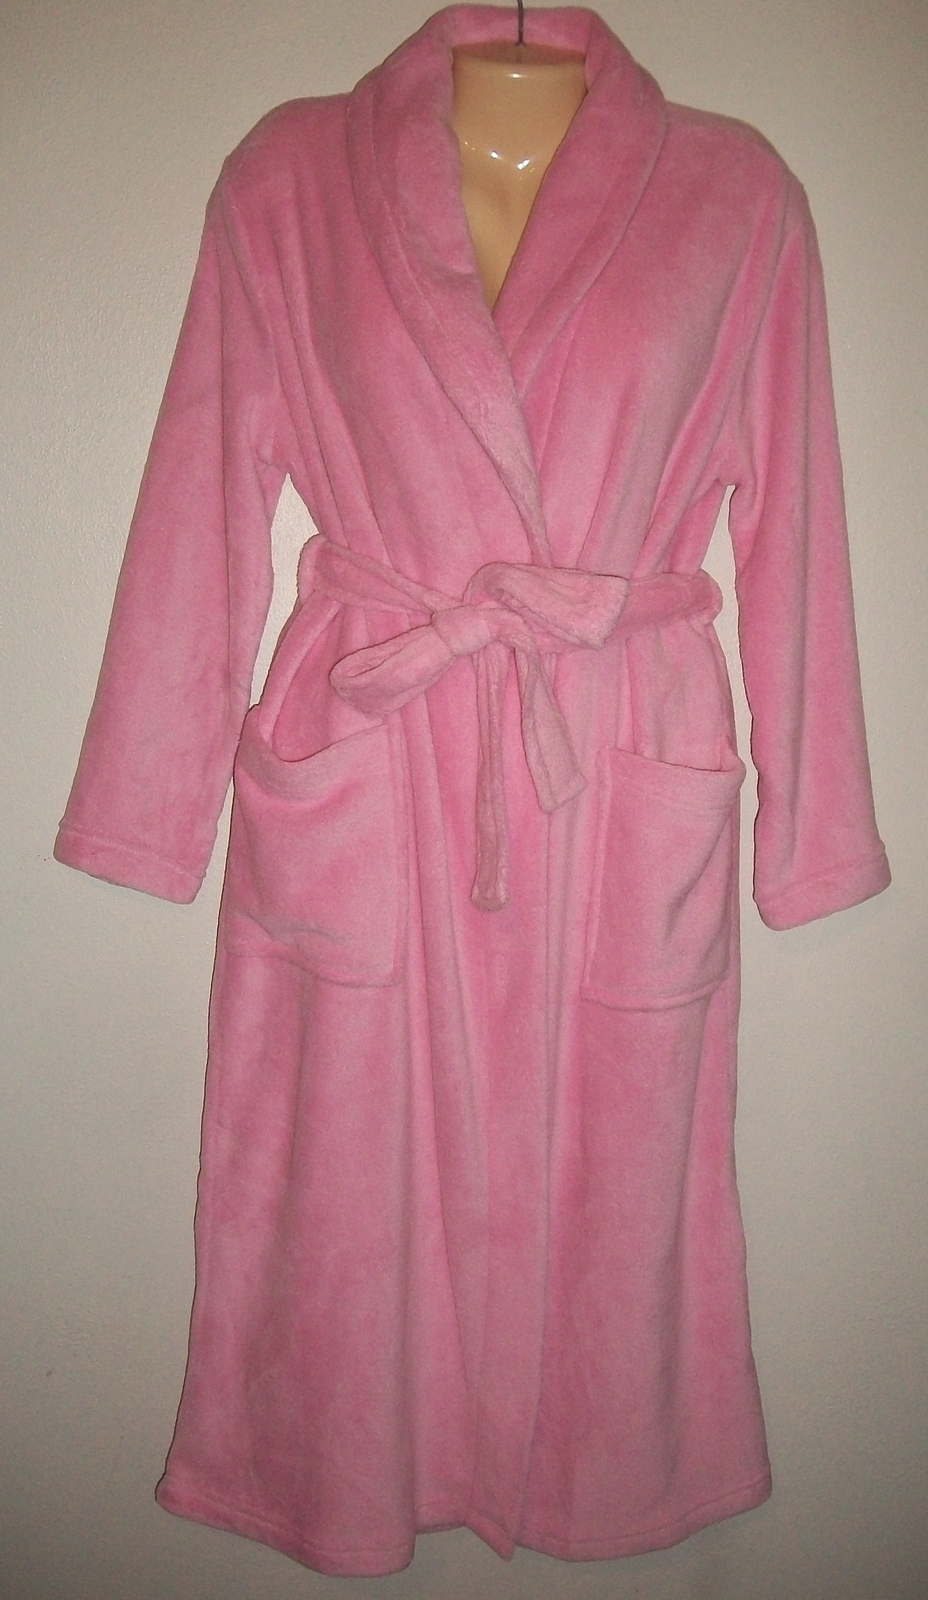 Primary image for Plush JASMINE ROSE SOFT LUXURIOUS WRAP Shawl Collar ROBE